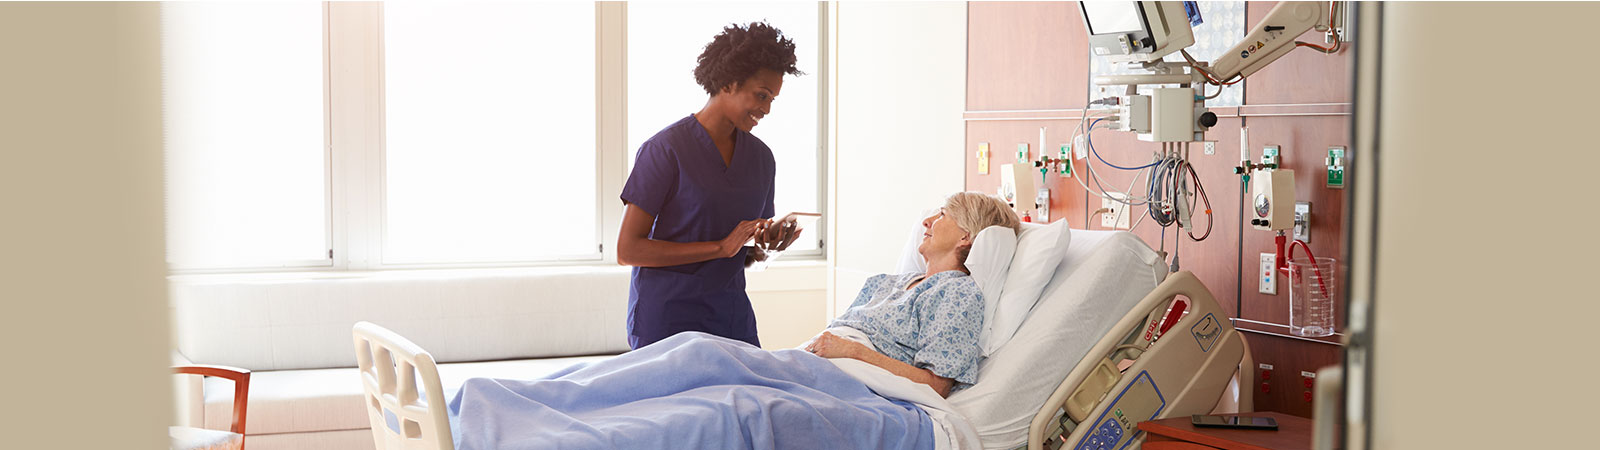 Tablet applications in healthcare solutions